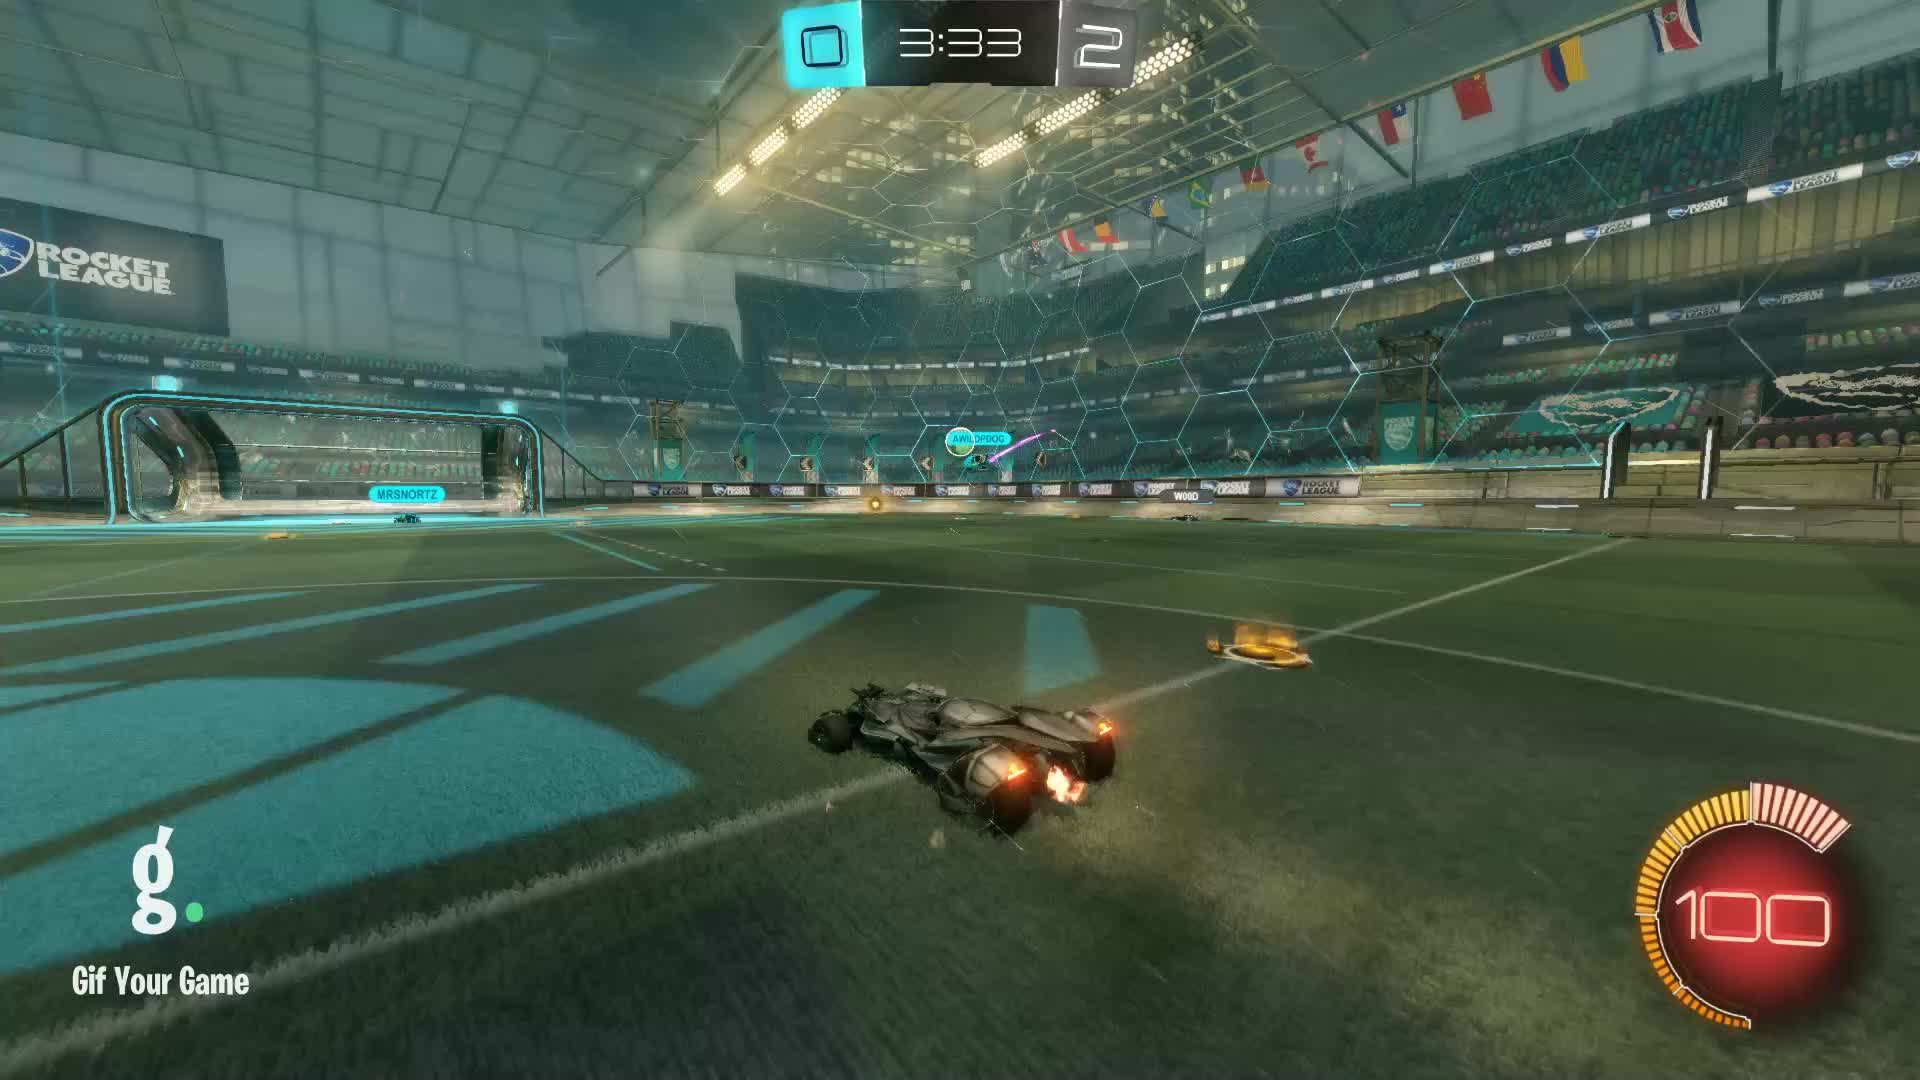 Dilweed [D33], Gif Your Game, GifYourGame, Goal, Rocket League, RocketLeague, Goal 3: Dilweed [D33] GIFs